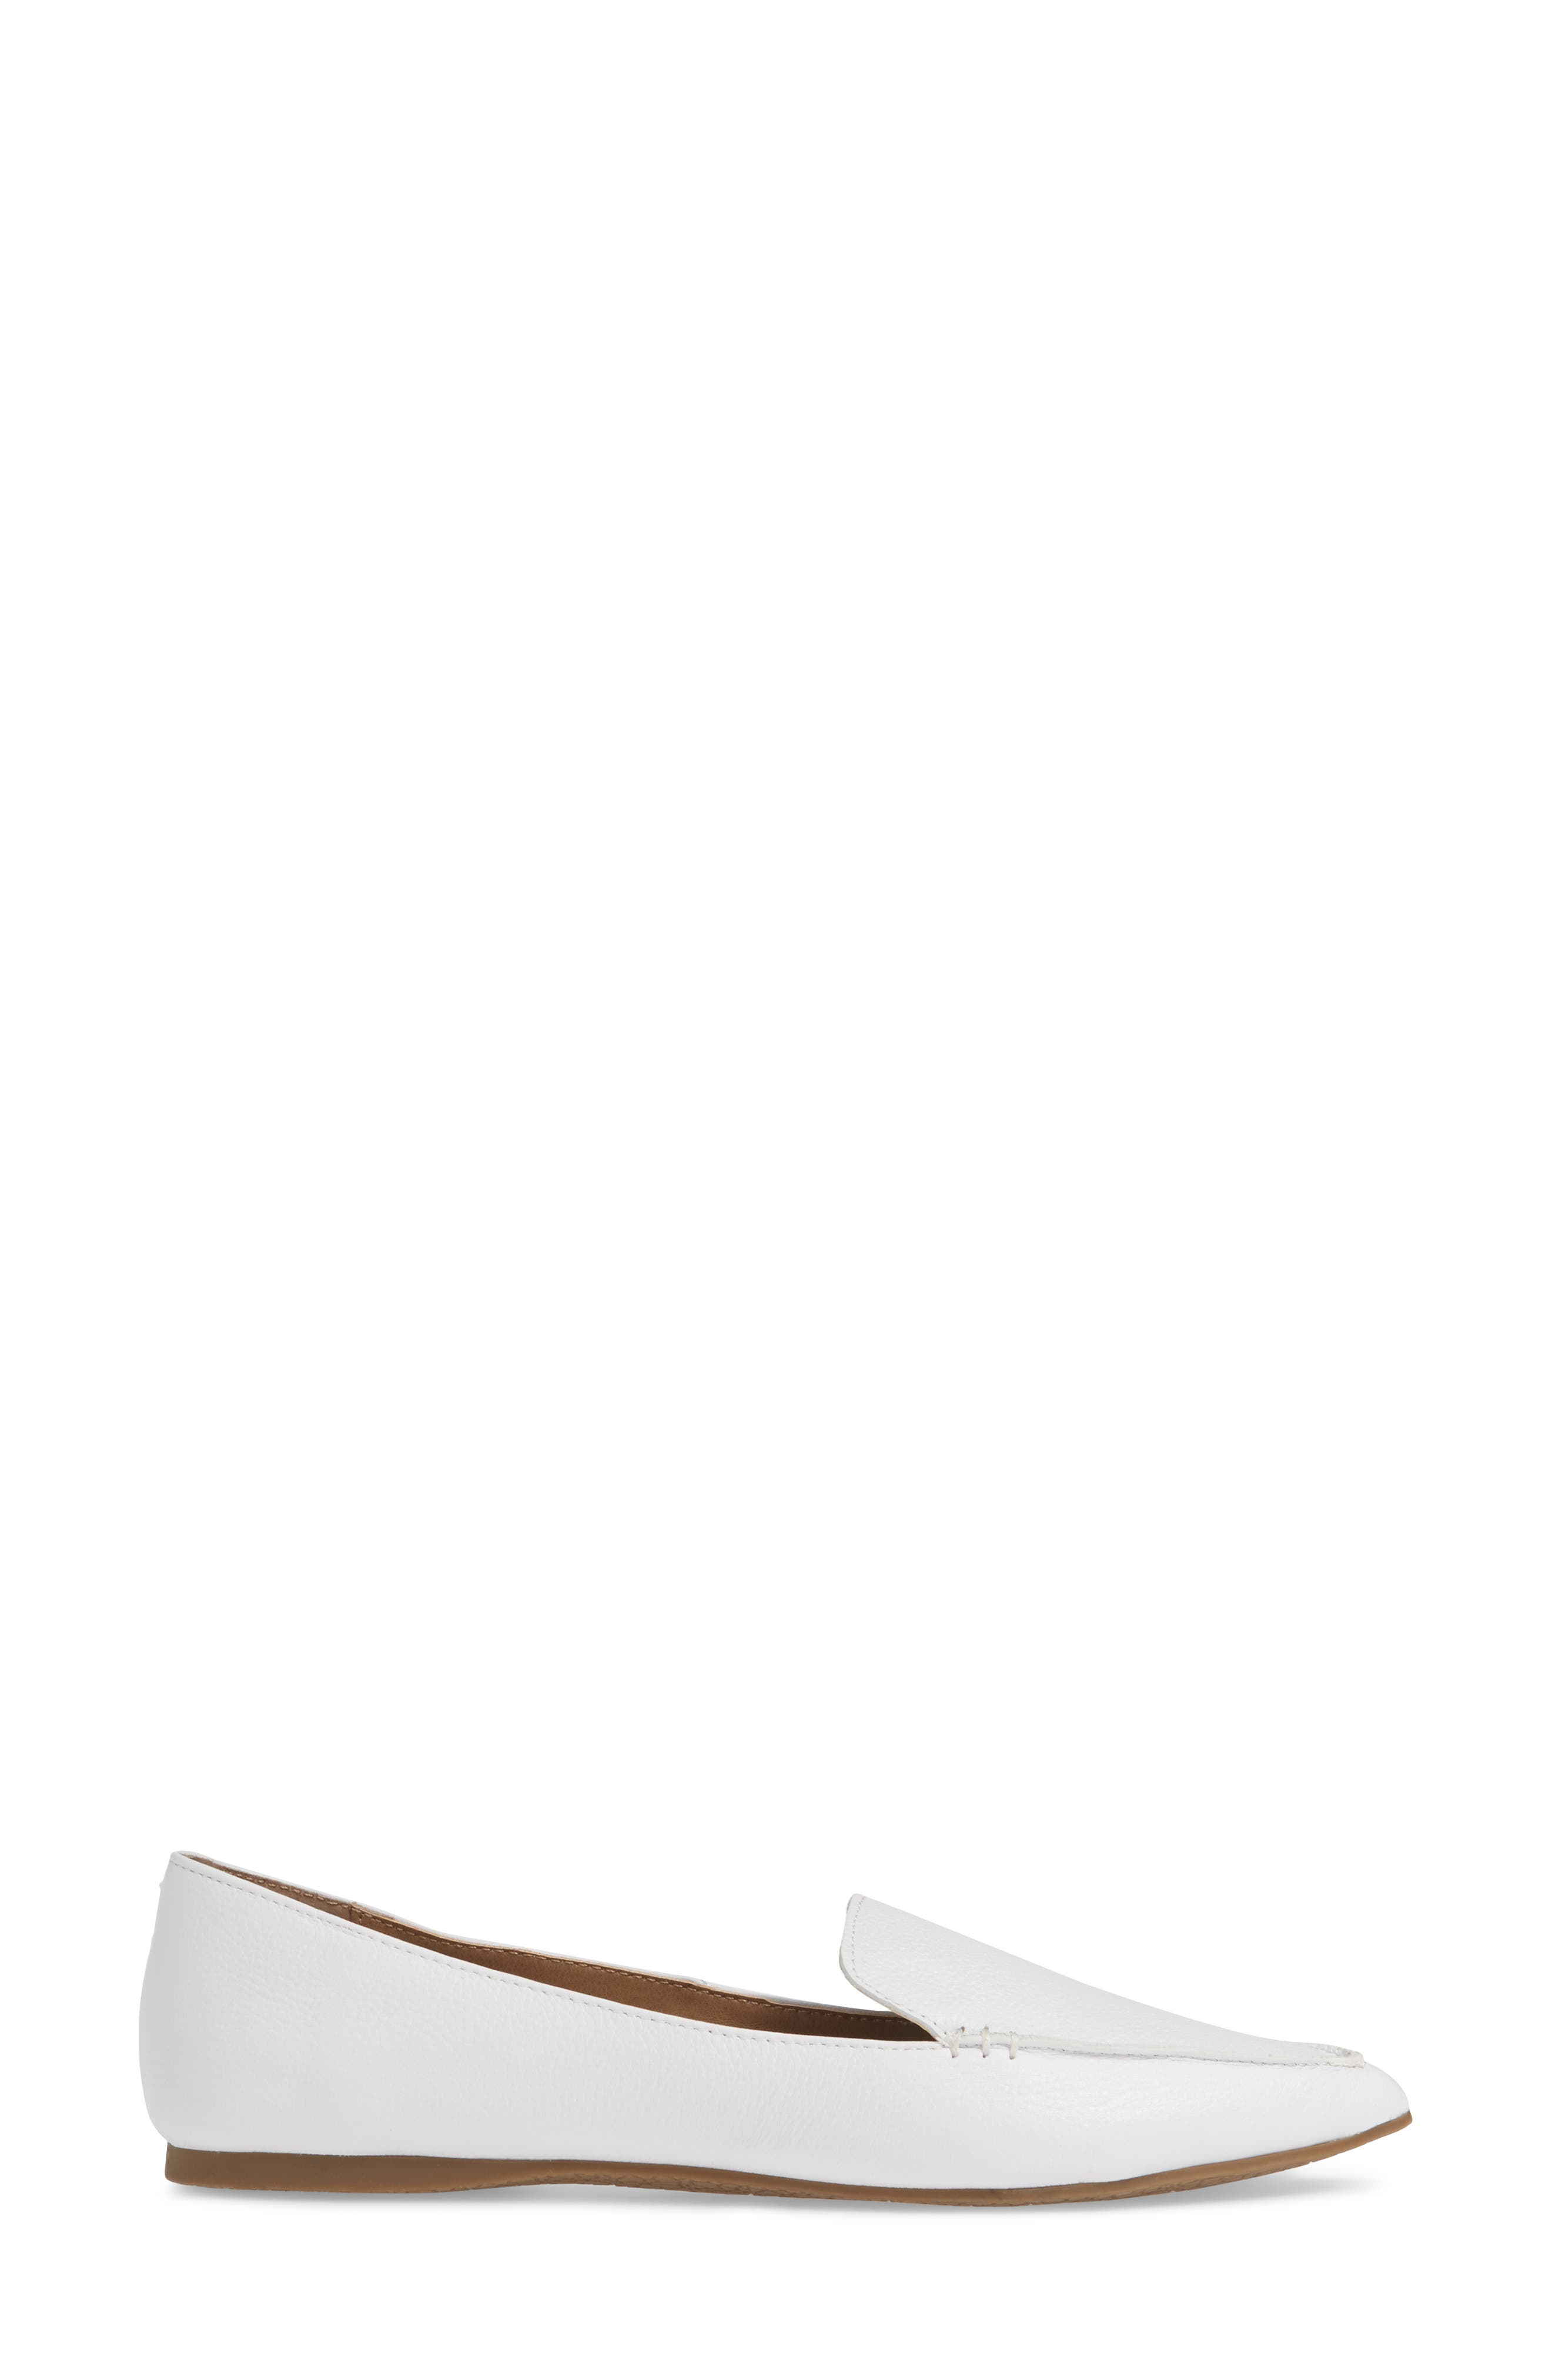 STEVE MADDEN,                             Feather Loafer Flat,                             Alternate thumbnail 3, color,                             WHITE LEATHER